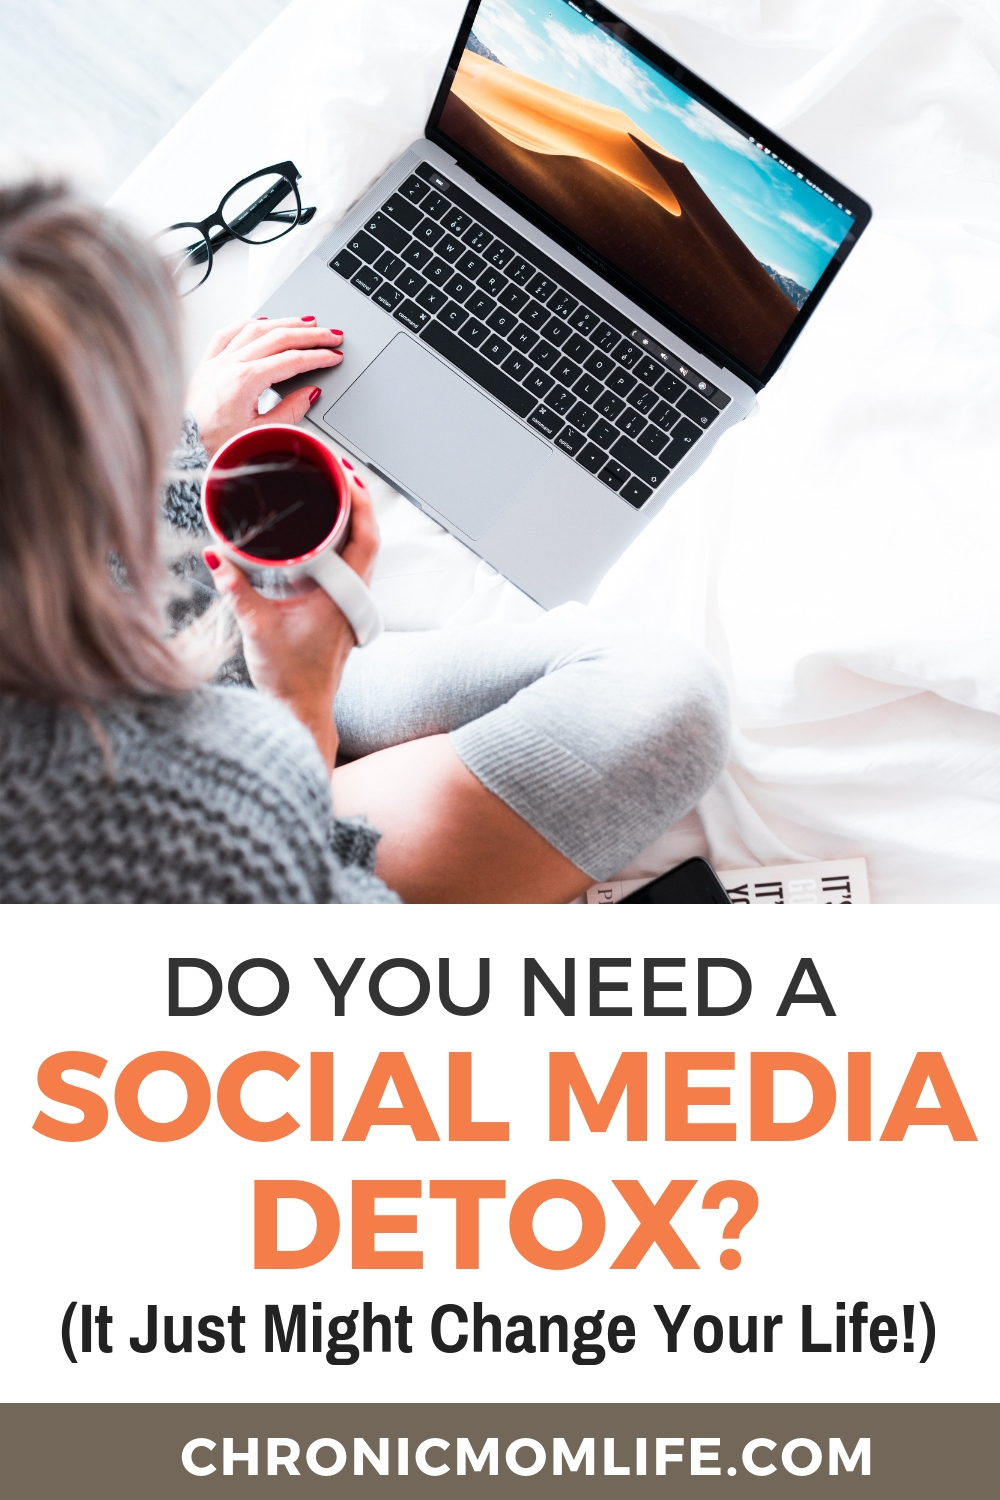 Do you need a social media detox? Reducing online stress just might change your life! #selfcare #selflove